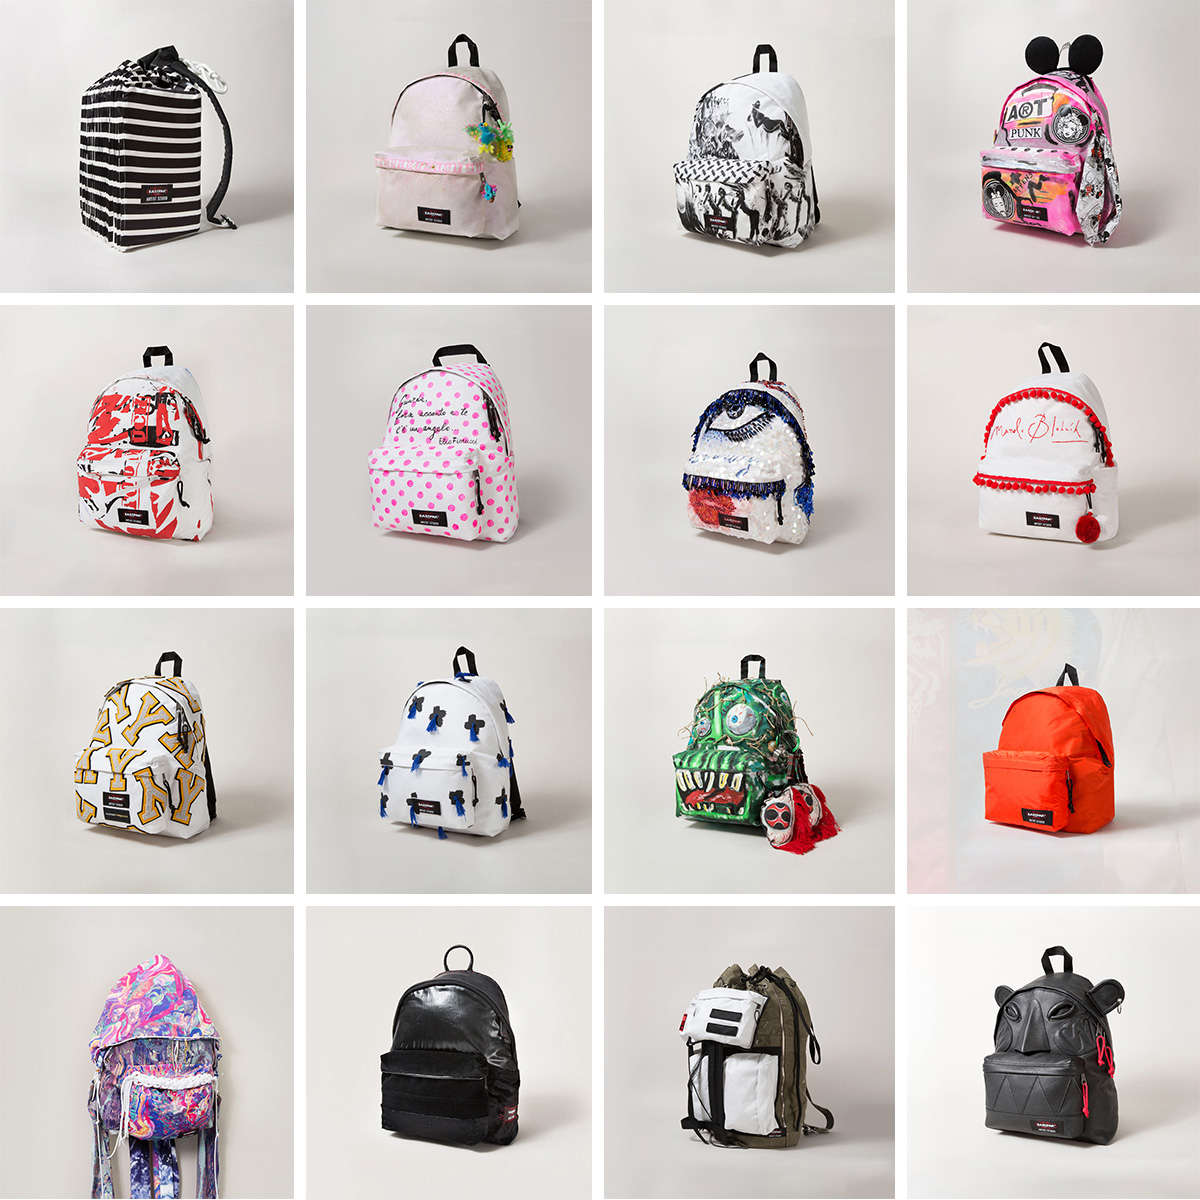 For 2014 Eastpak Artist Studio has provided some of the biggest names in fashion. The proceeds will be donated to the organization Designers Against AIDS.